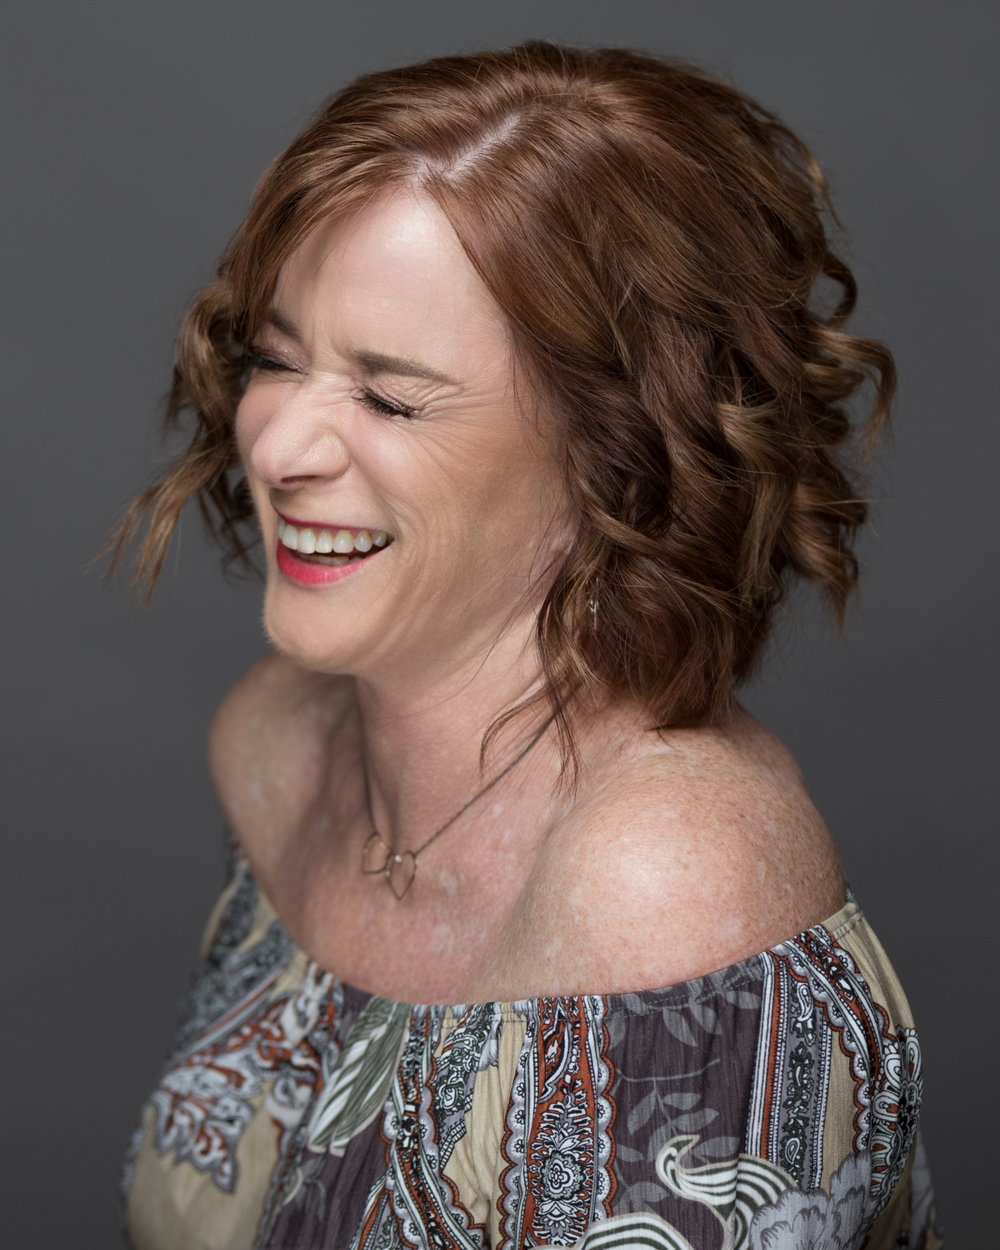 mature client laughing in off the shoulder top curled short hair soft red lipstick natural soft glam glowing makeup by kim baker beauty san jose california makeup artist